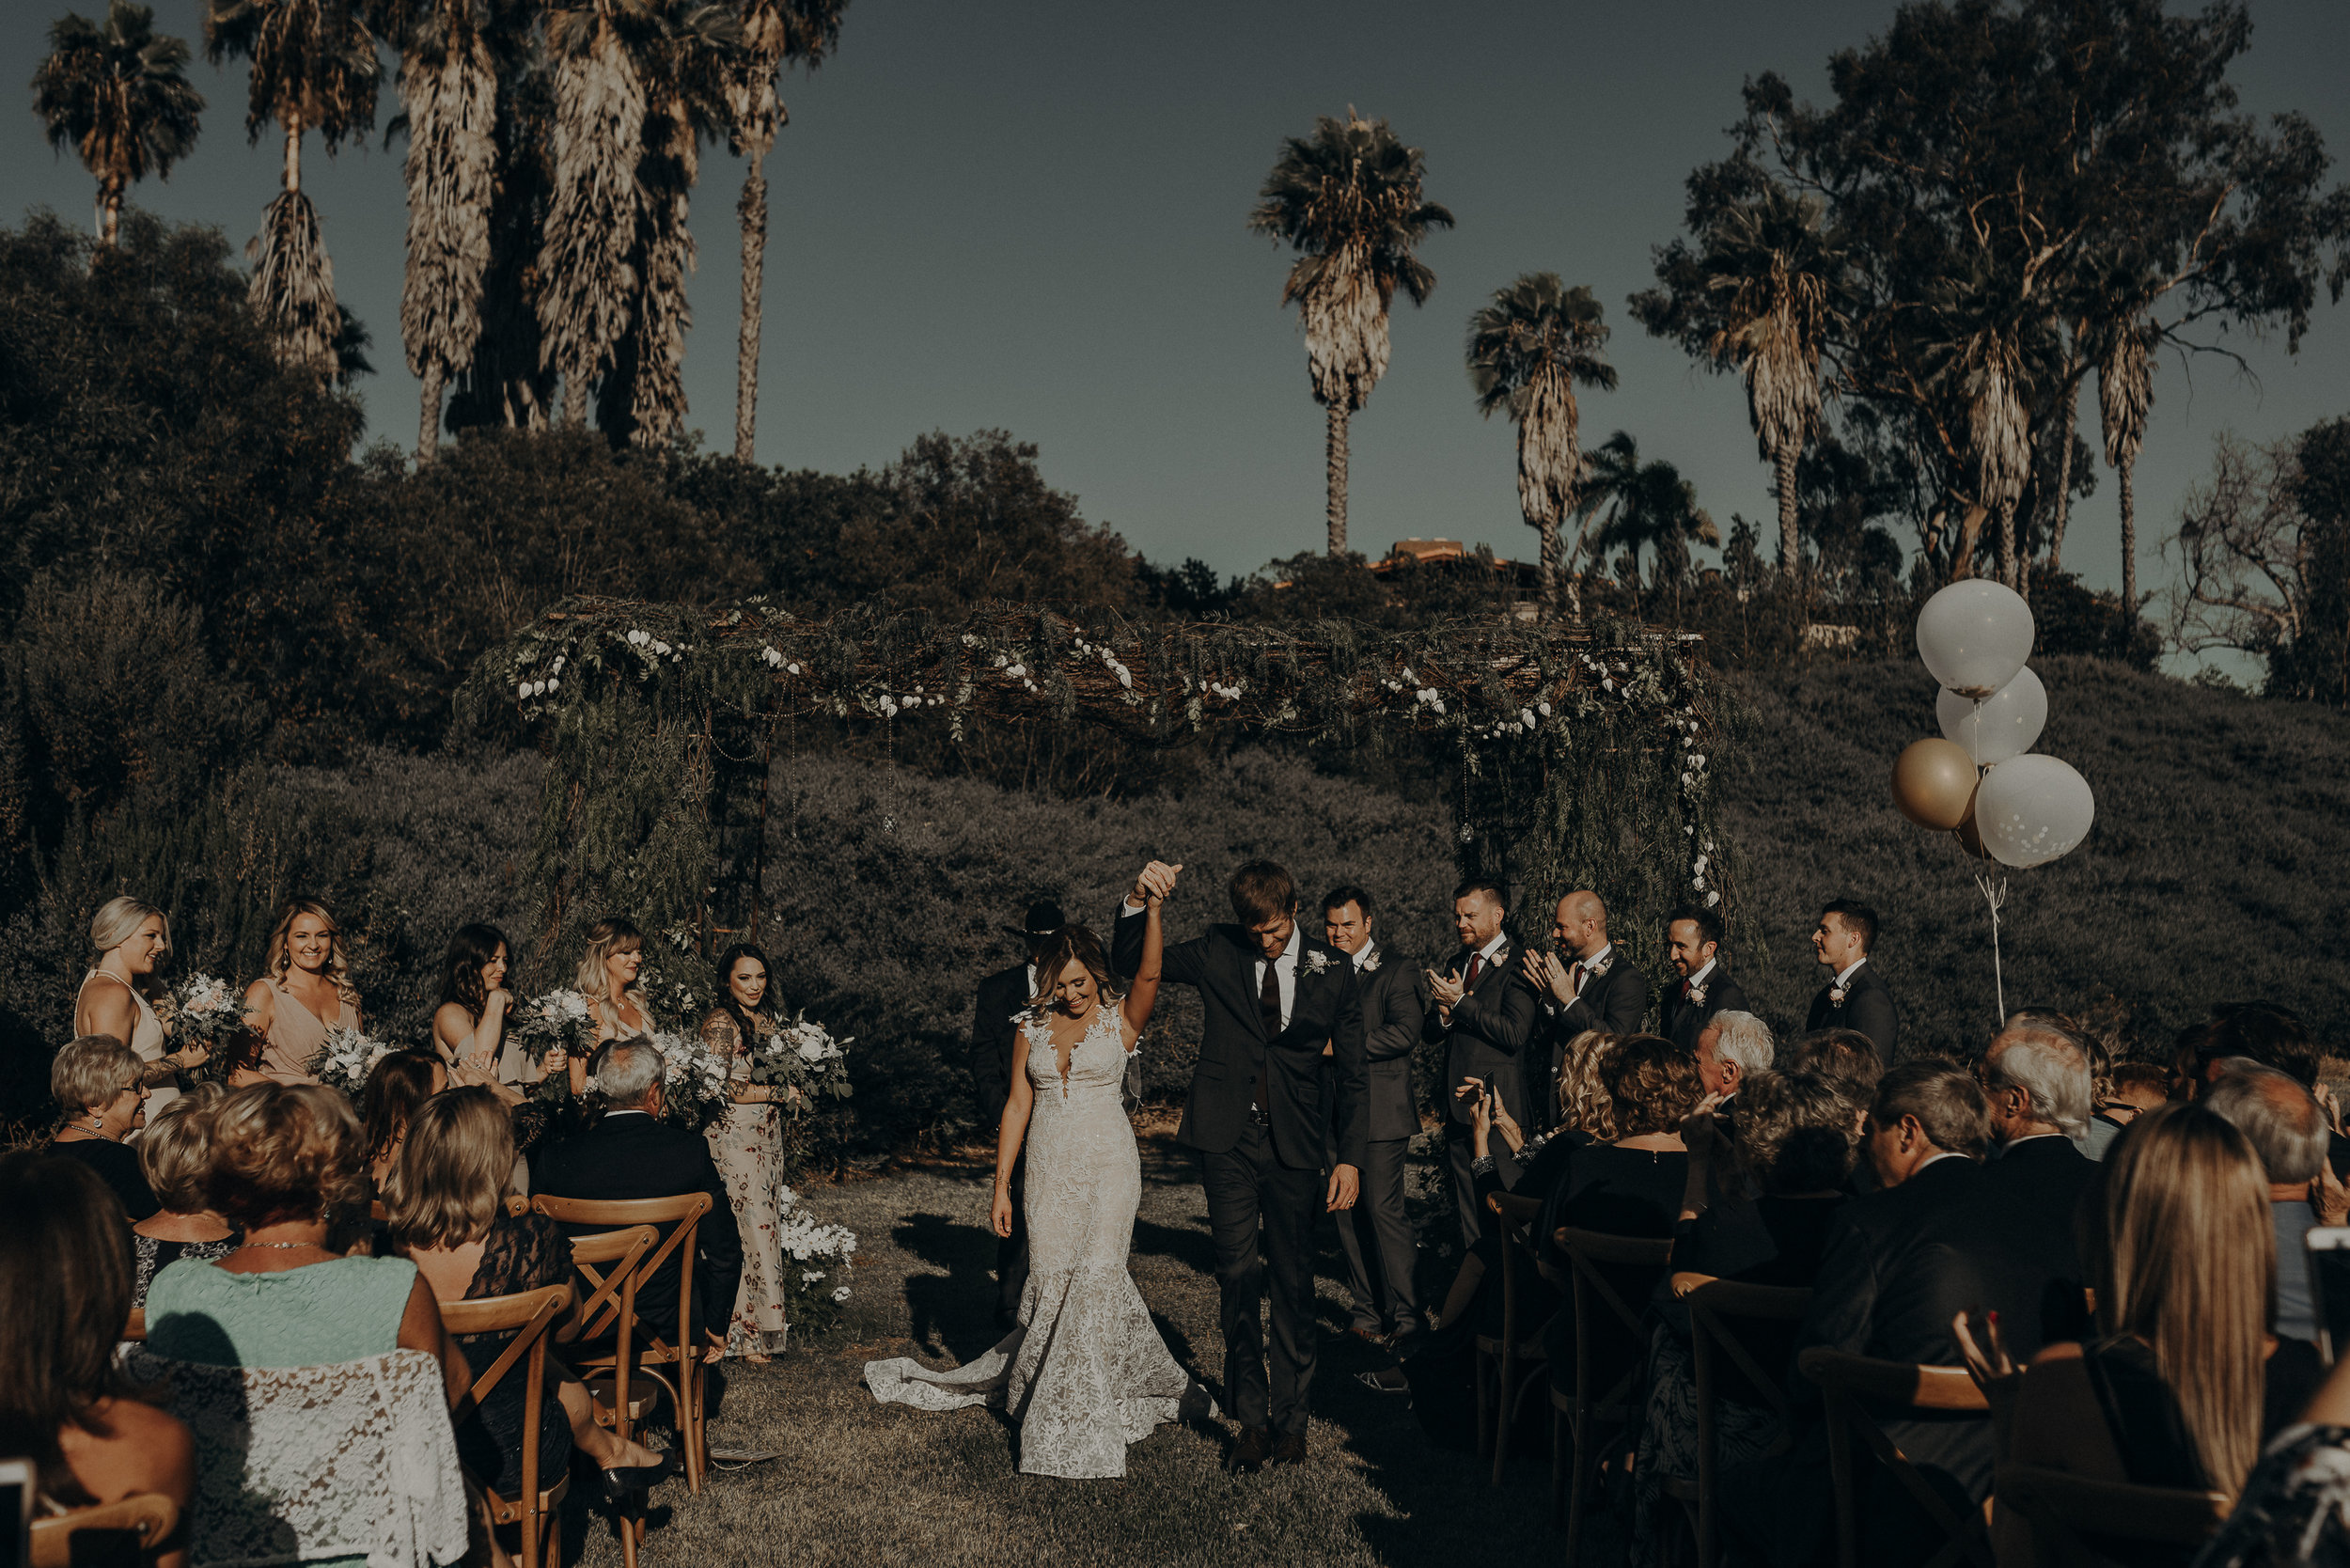 Isaiah + Taylor Photography - Los Angeles Wedding Photographer - Open Air Resort Wedding-64.jpg